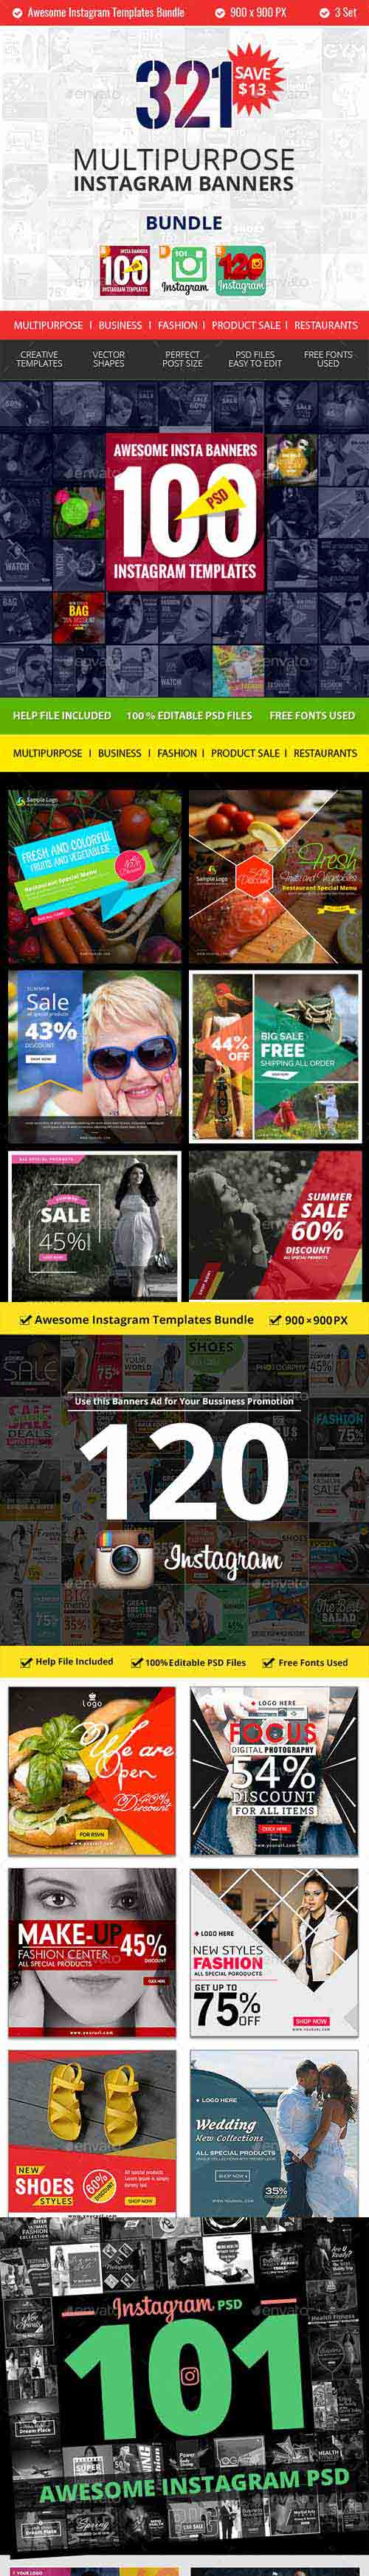 321 Instagram Promotional Bundle 19305530